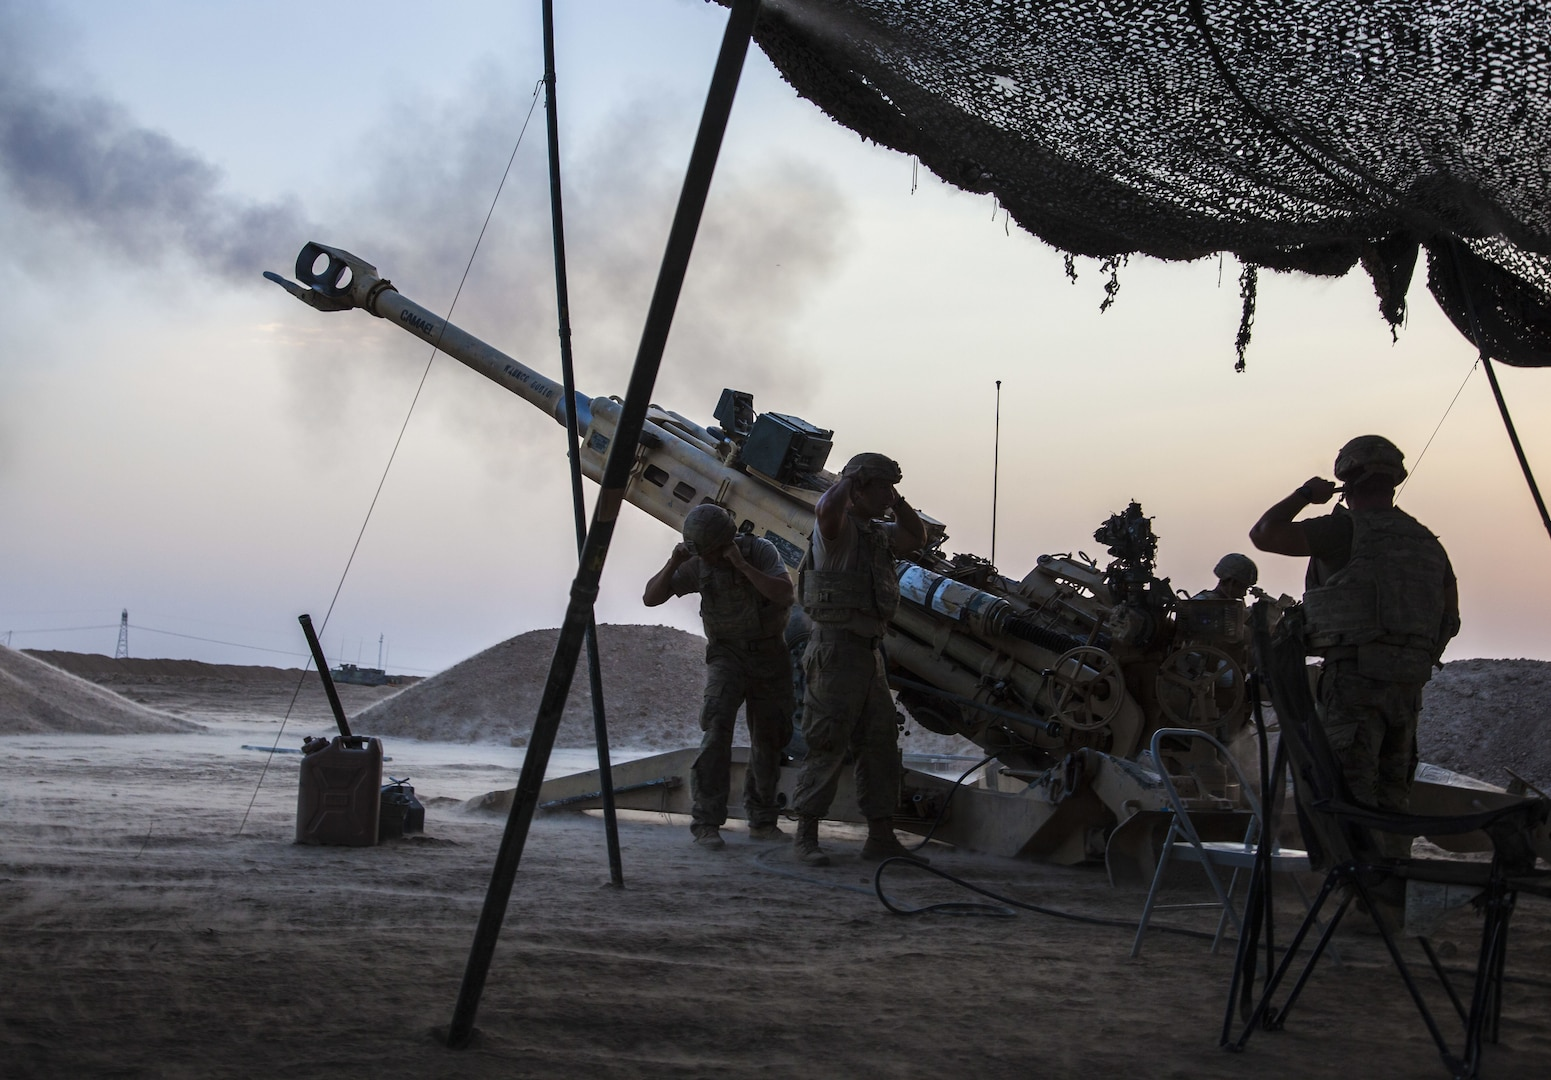 U.S. Army Paratroopers, deployed in support of Combined Joint Task Force – Operation Inherent Resolve and assigned to 2nd Battalion, 319th Airborne Field Artillery Regiment, 2nd Brigade Combat Team, 82nd Airborne Division, fire an M777 towed 155 mm howitzer in support of Iraqi security forces in northern Iraq, August 15, 2017. The 2nd BCT, 82nd Abn. Div., enables Iraqi security force partners through the advise and assist mission, contributing planning, intelligence collection and analysis, force protection and precision fires to achieve the military defeat of ISIS. CJTF-OIR is the global Coalition to defeat ISIS in Iraq and Syria. (U.S. Army photo by Cpl. Rachel Diehm.)